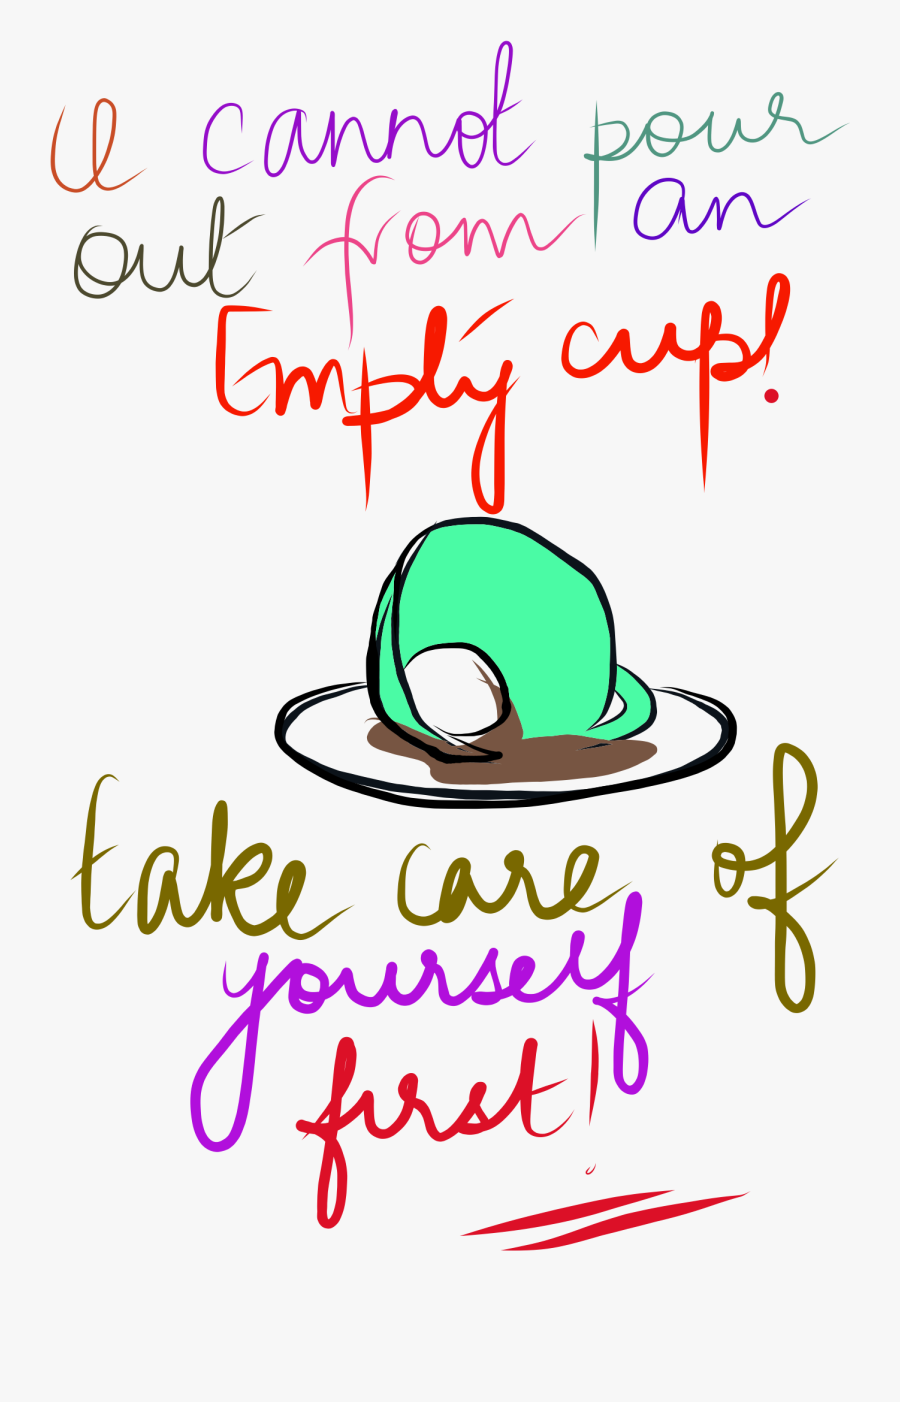 Only You Can Take Care Of Yourself - You Can Care About Yourself Only, Transparent Clipart